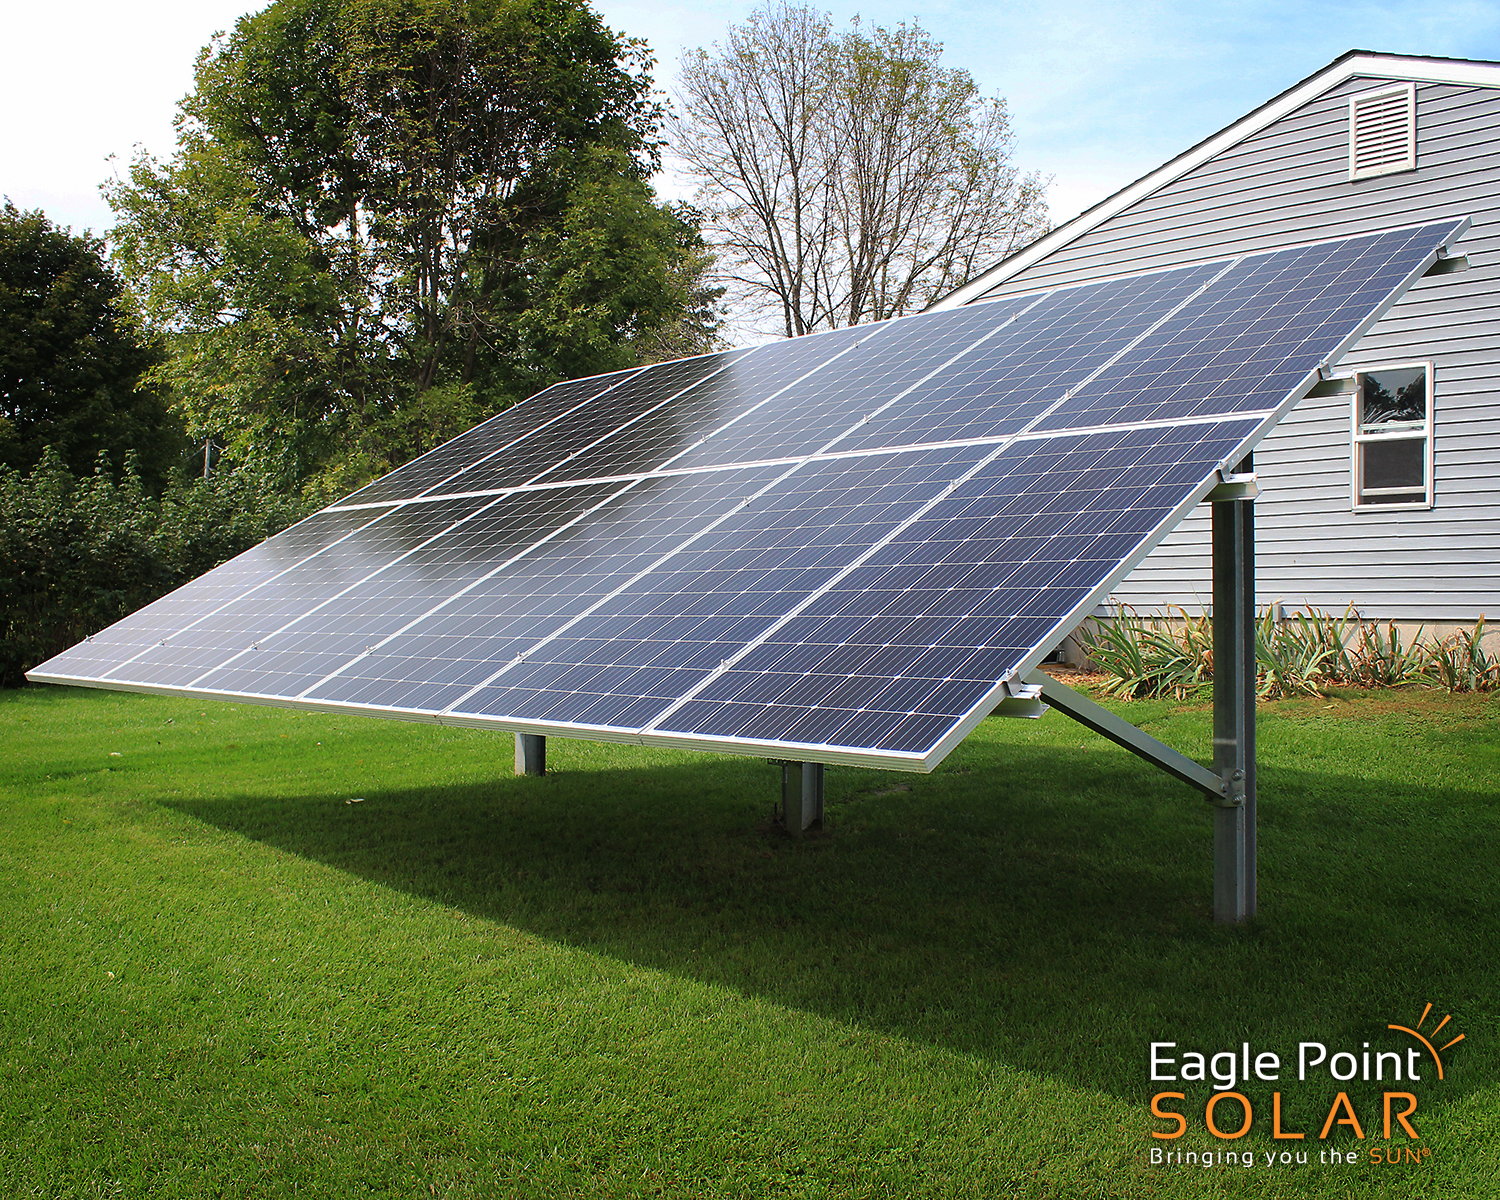 PHOTO OF GROUND MOUNTED SOLAR ARRAY COLE RESIDENTIAL, ILLINOIS_V2